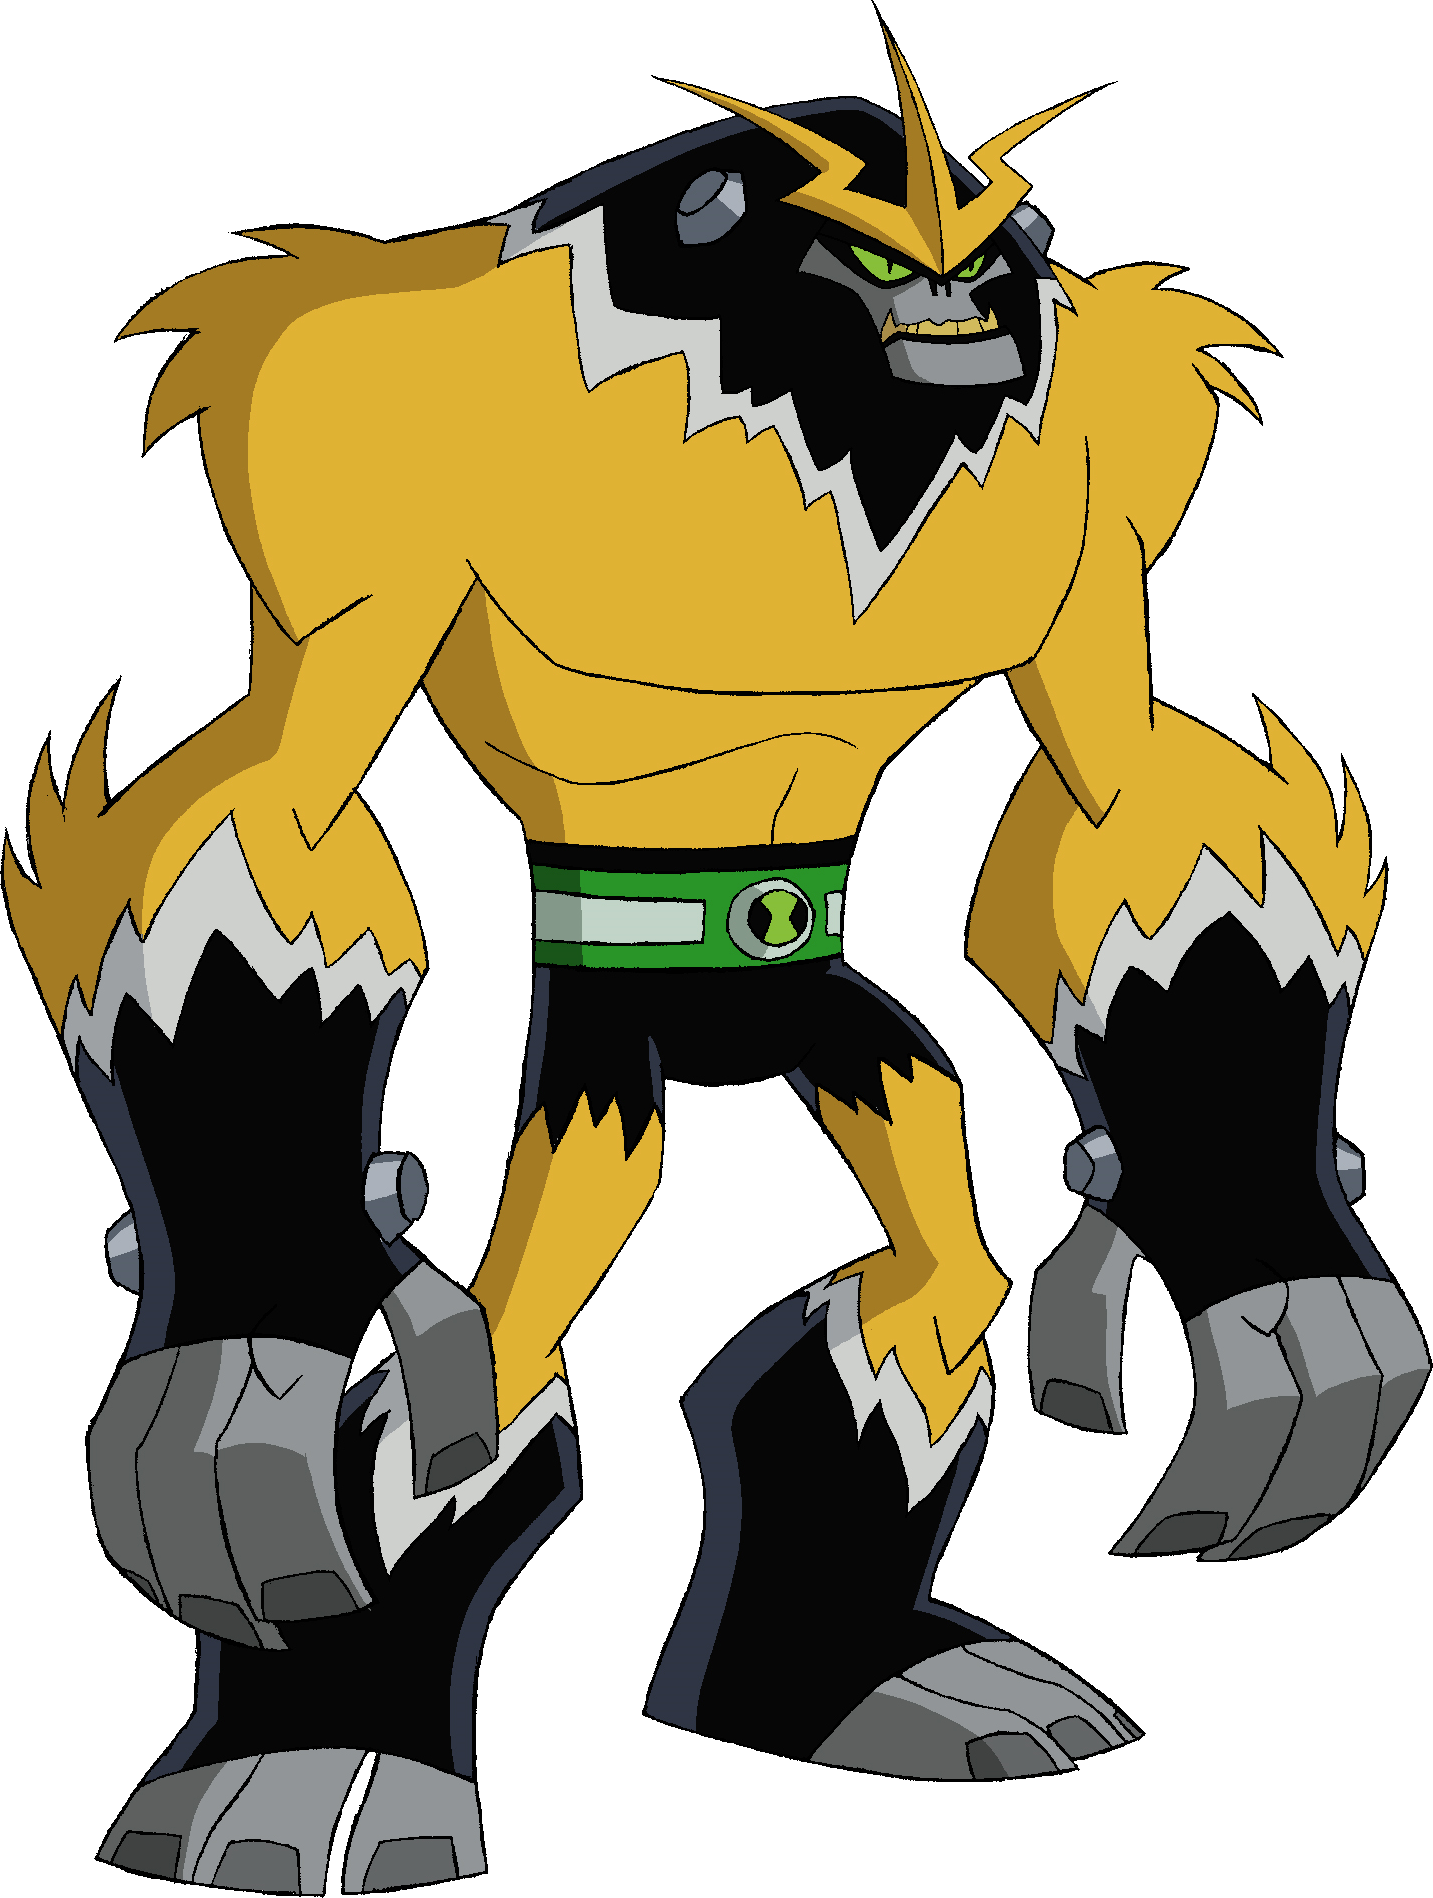 shocksquatch ben 10 planet  the ultimate ben 10 resource clipart rock fingers clip art rocks and gems